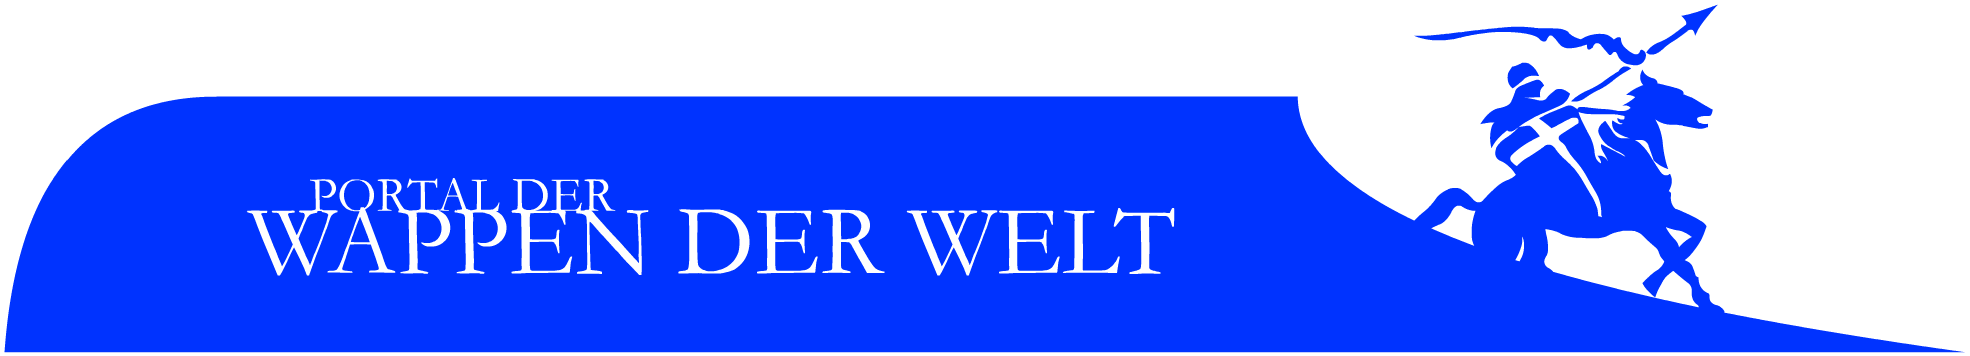 File Banner Portal Wappen 1 Png Wikimedia Commons